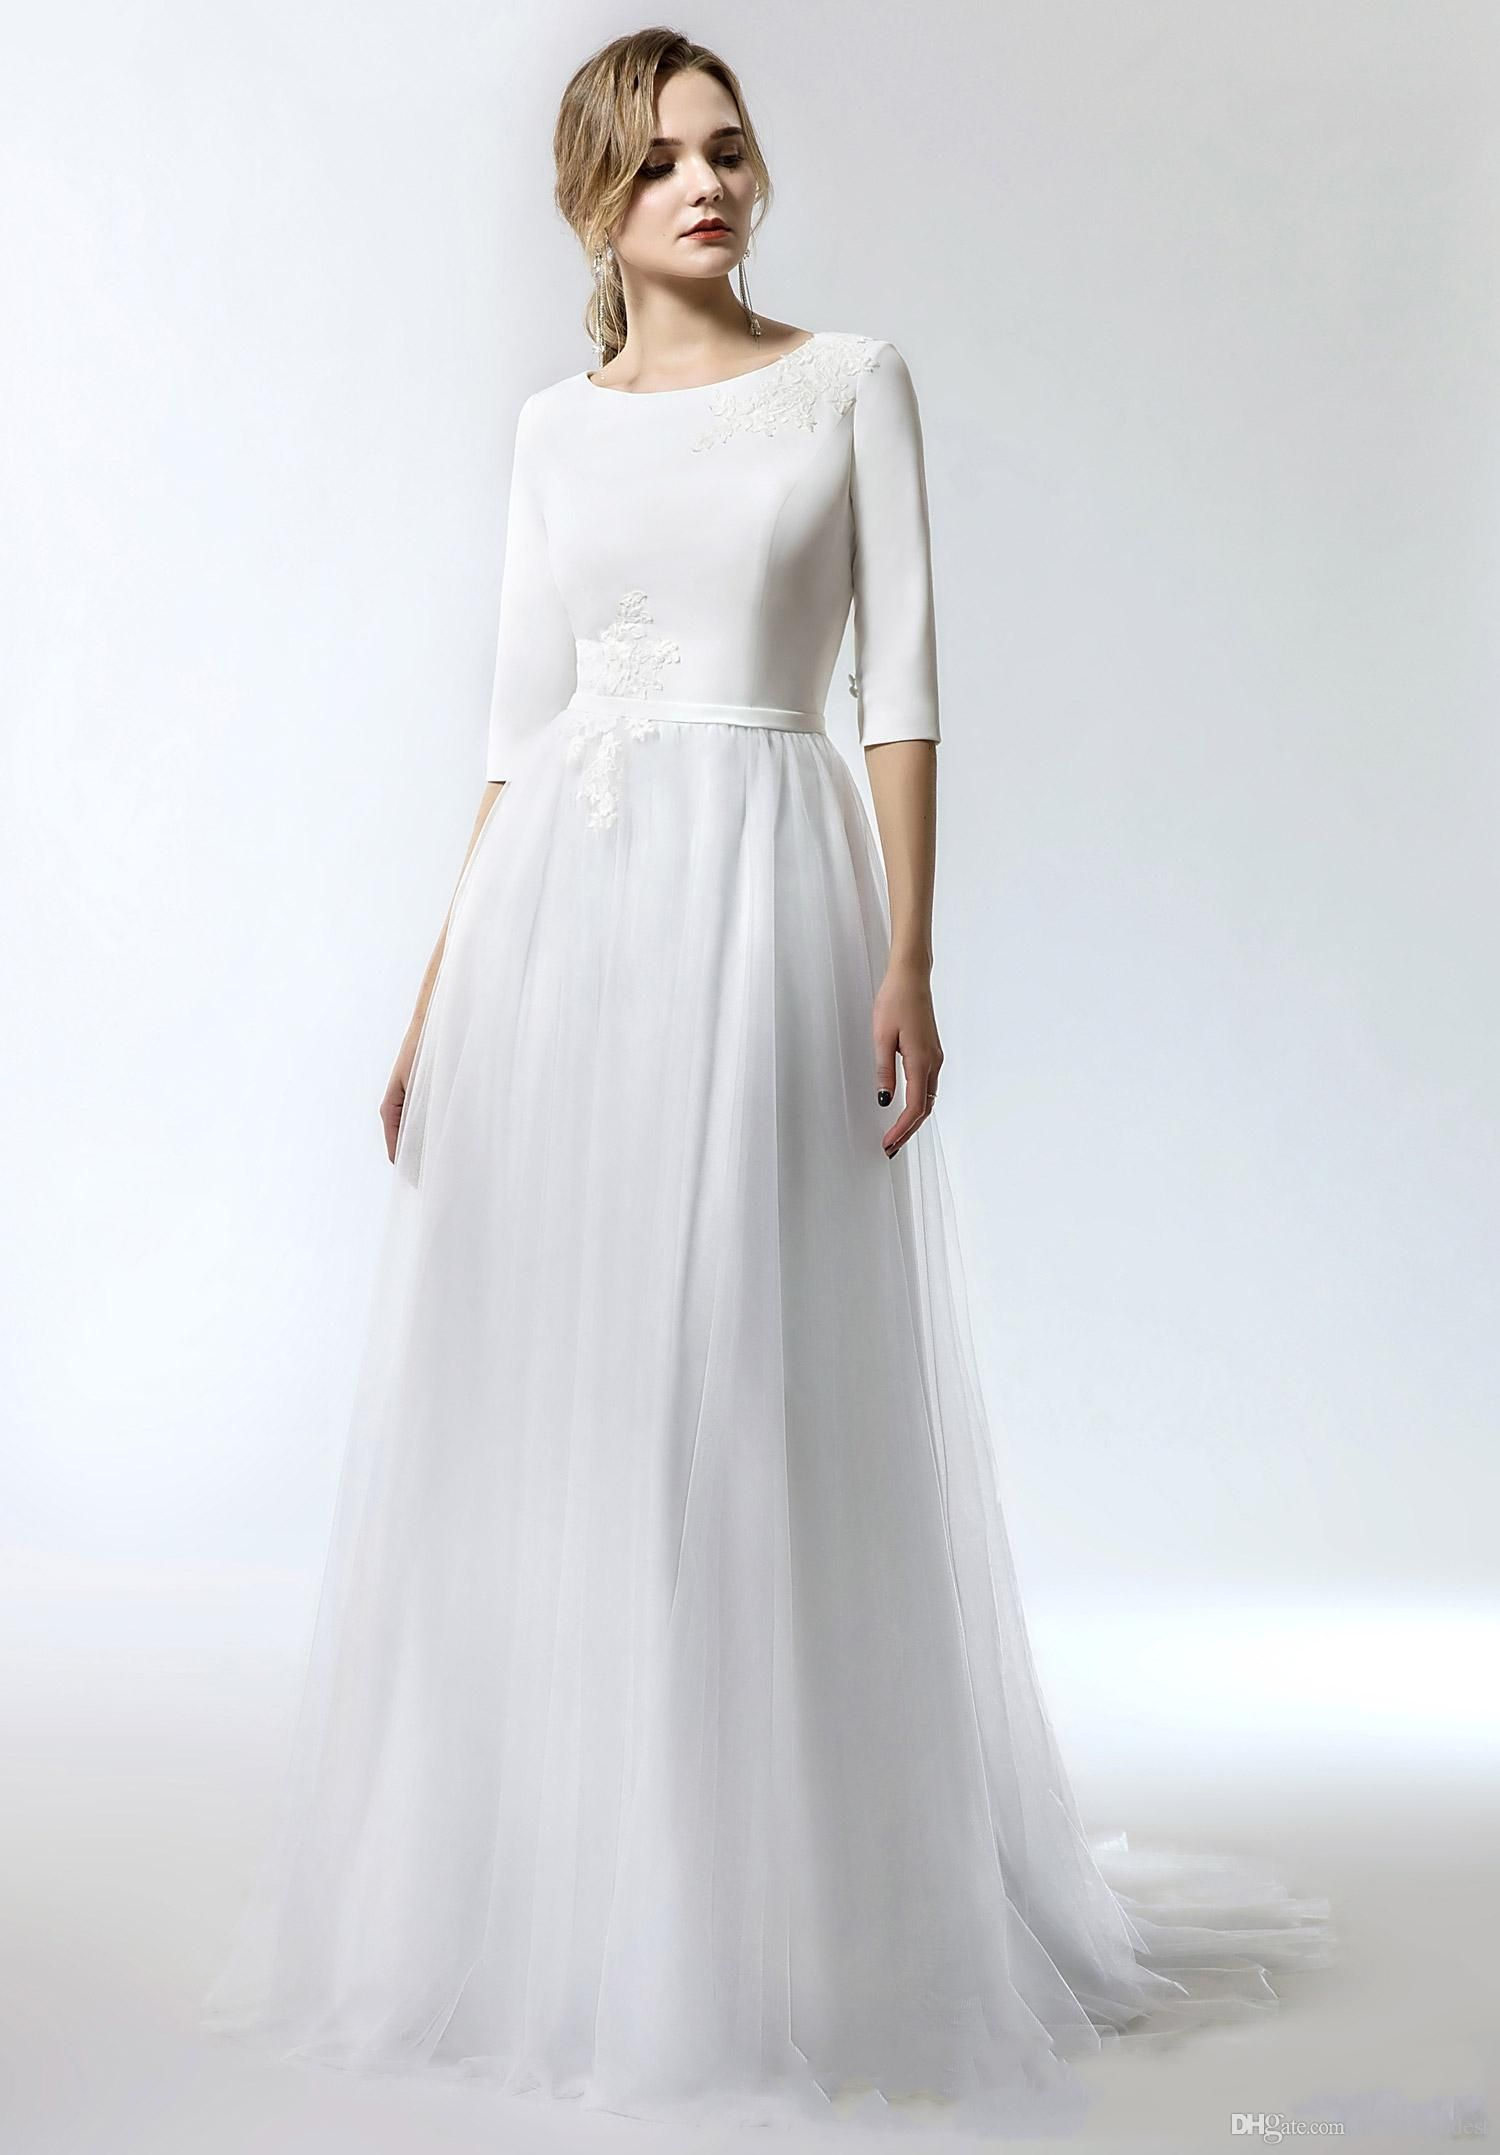 2019 new simple aline long modest wedding dress with 12